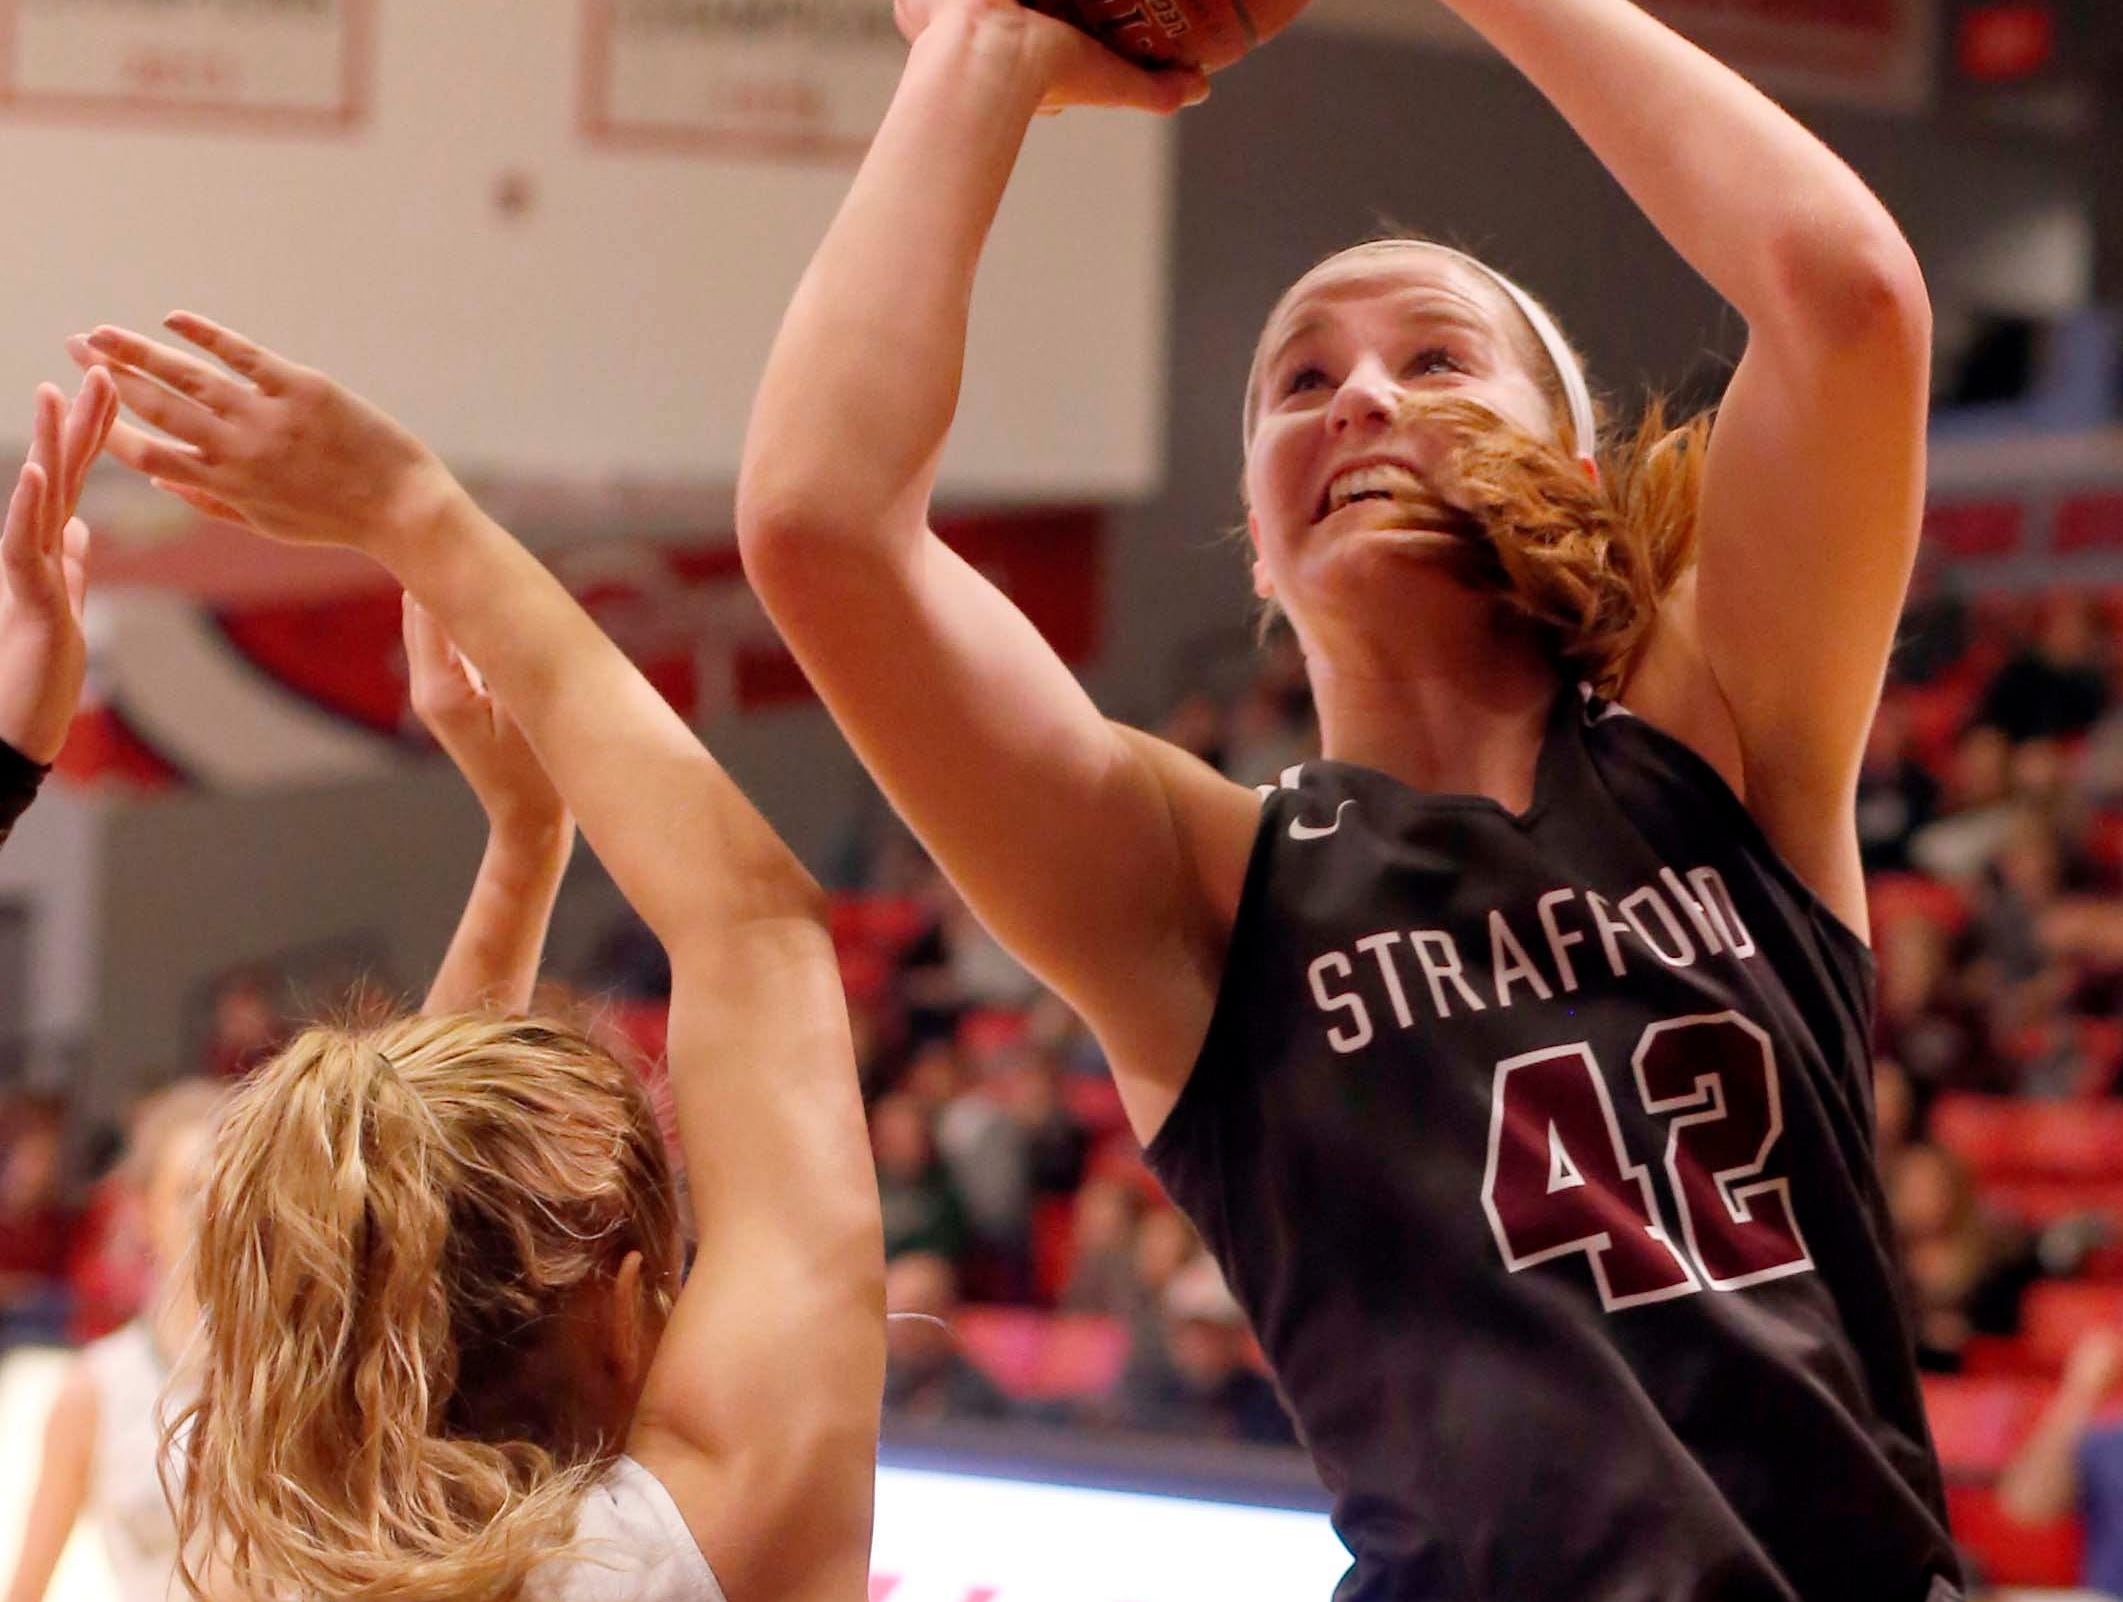 The Strafford Lady Indians' Hayley Frank shoots against Mt Vernon at Drury on December 29, 2018.